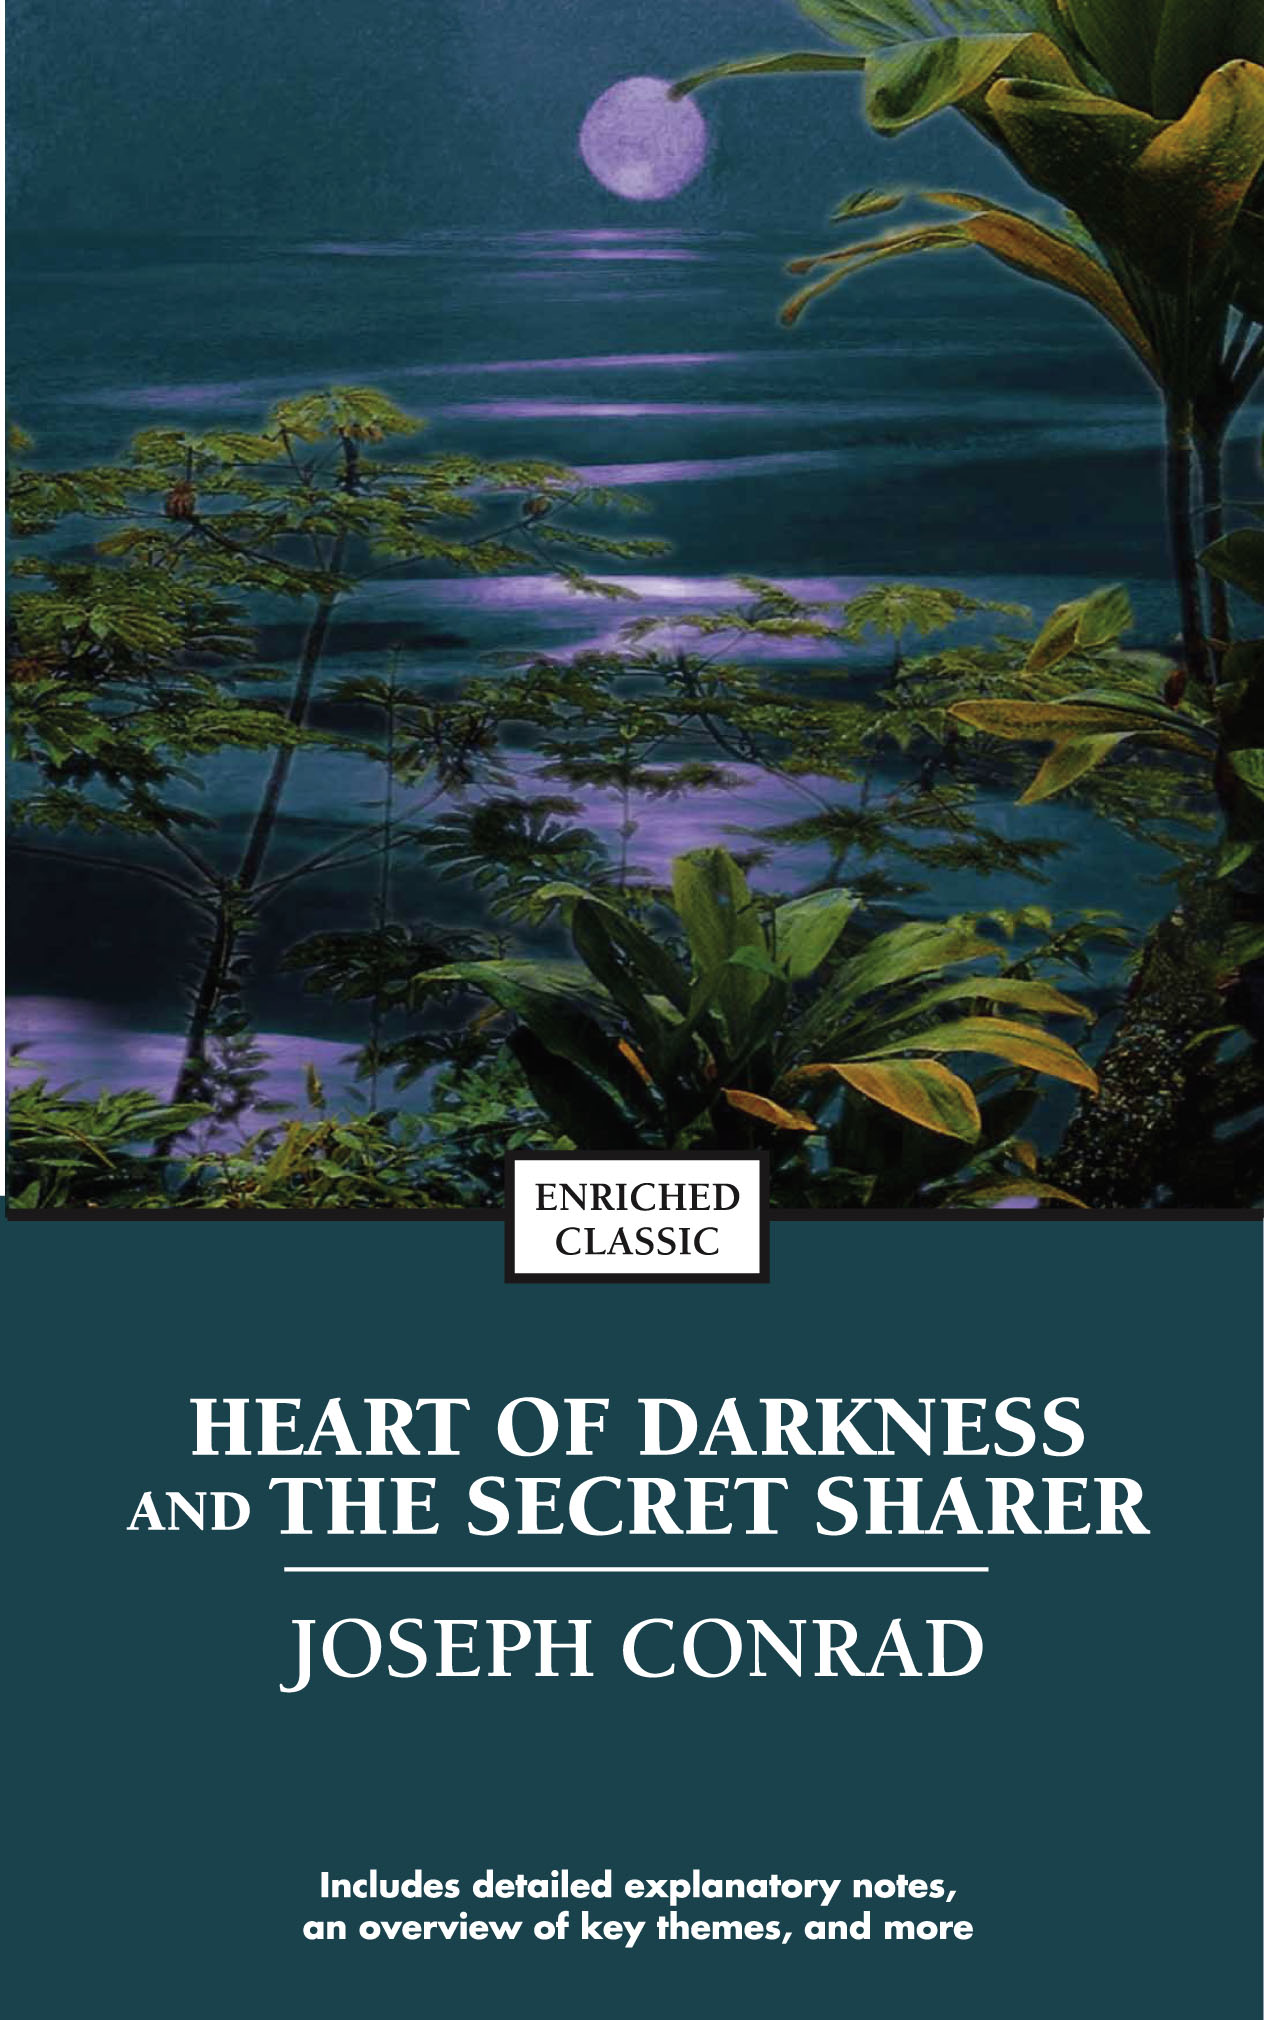 Heart of darkness modernism and its